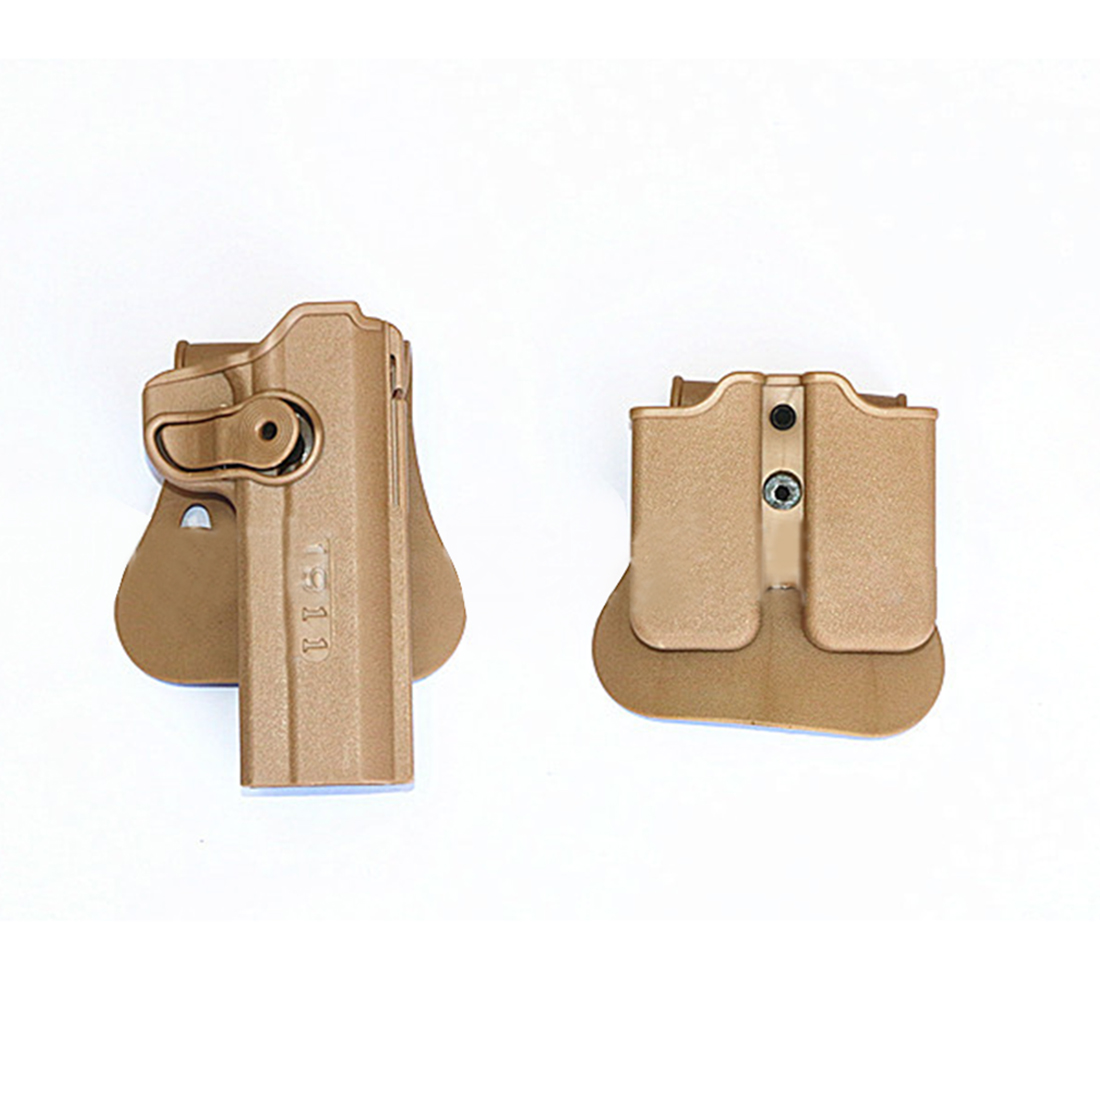 1Pair Outdoors Tactics Accessories Tactical Double Magazine Pouch And Holster With Waist Plates For <font><b>M1911</b></font> / 45ACP - Black Tan image